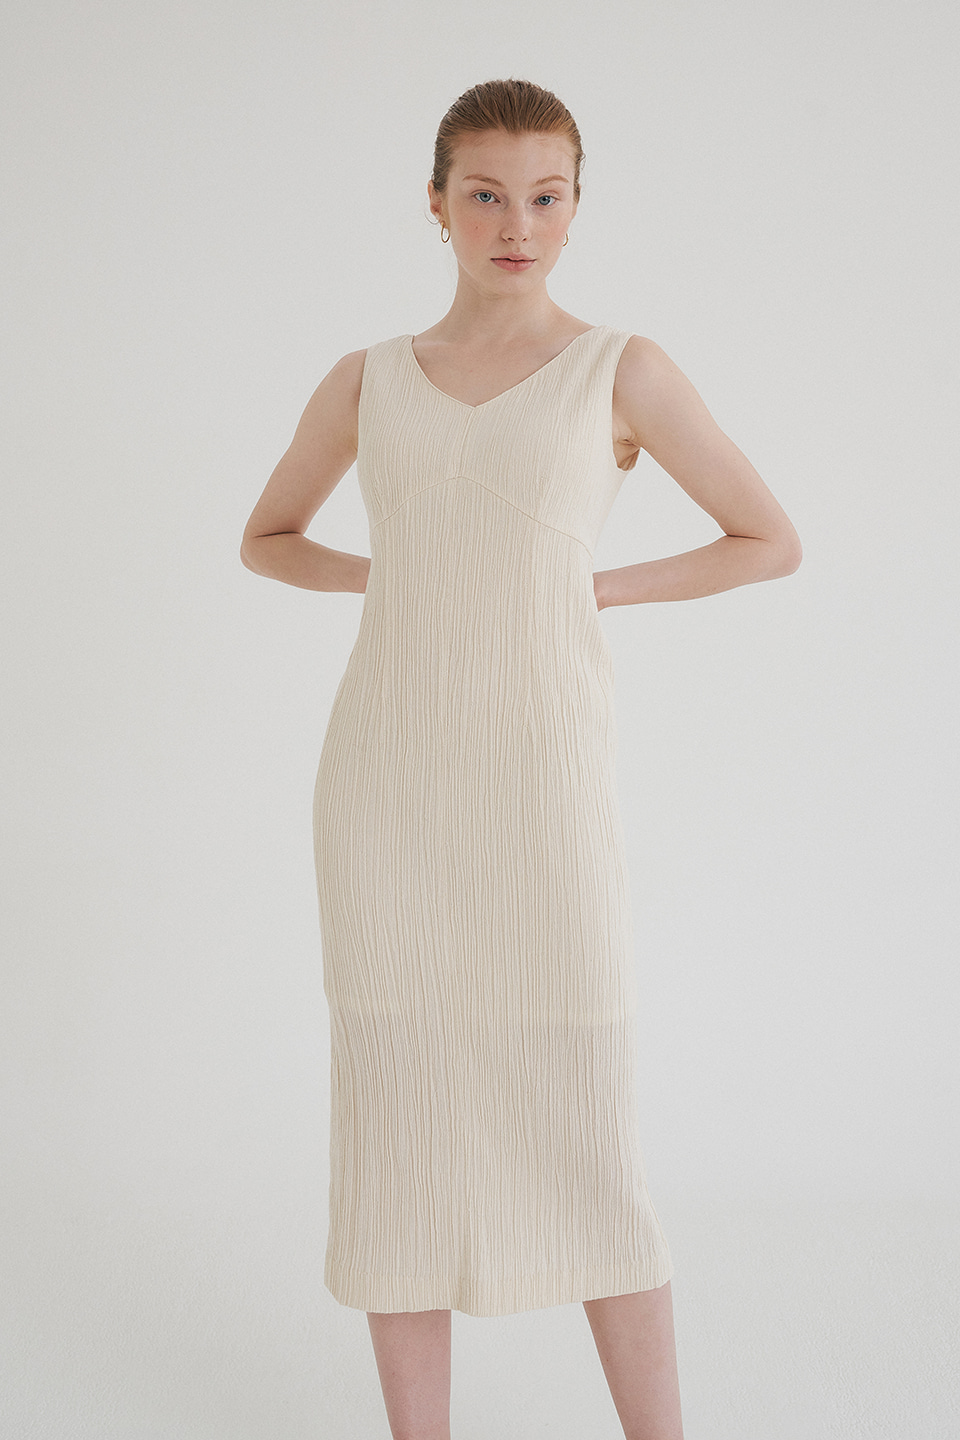 cotton wrinkled v dress (cream)